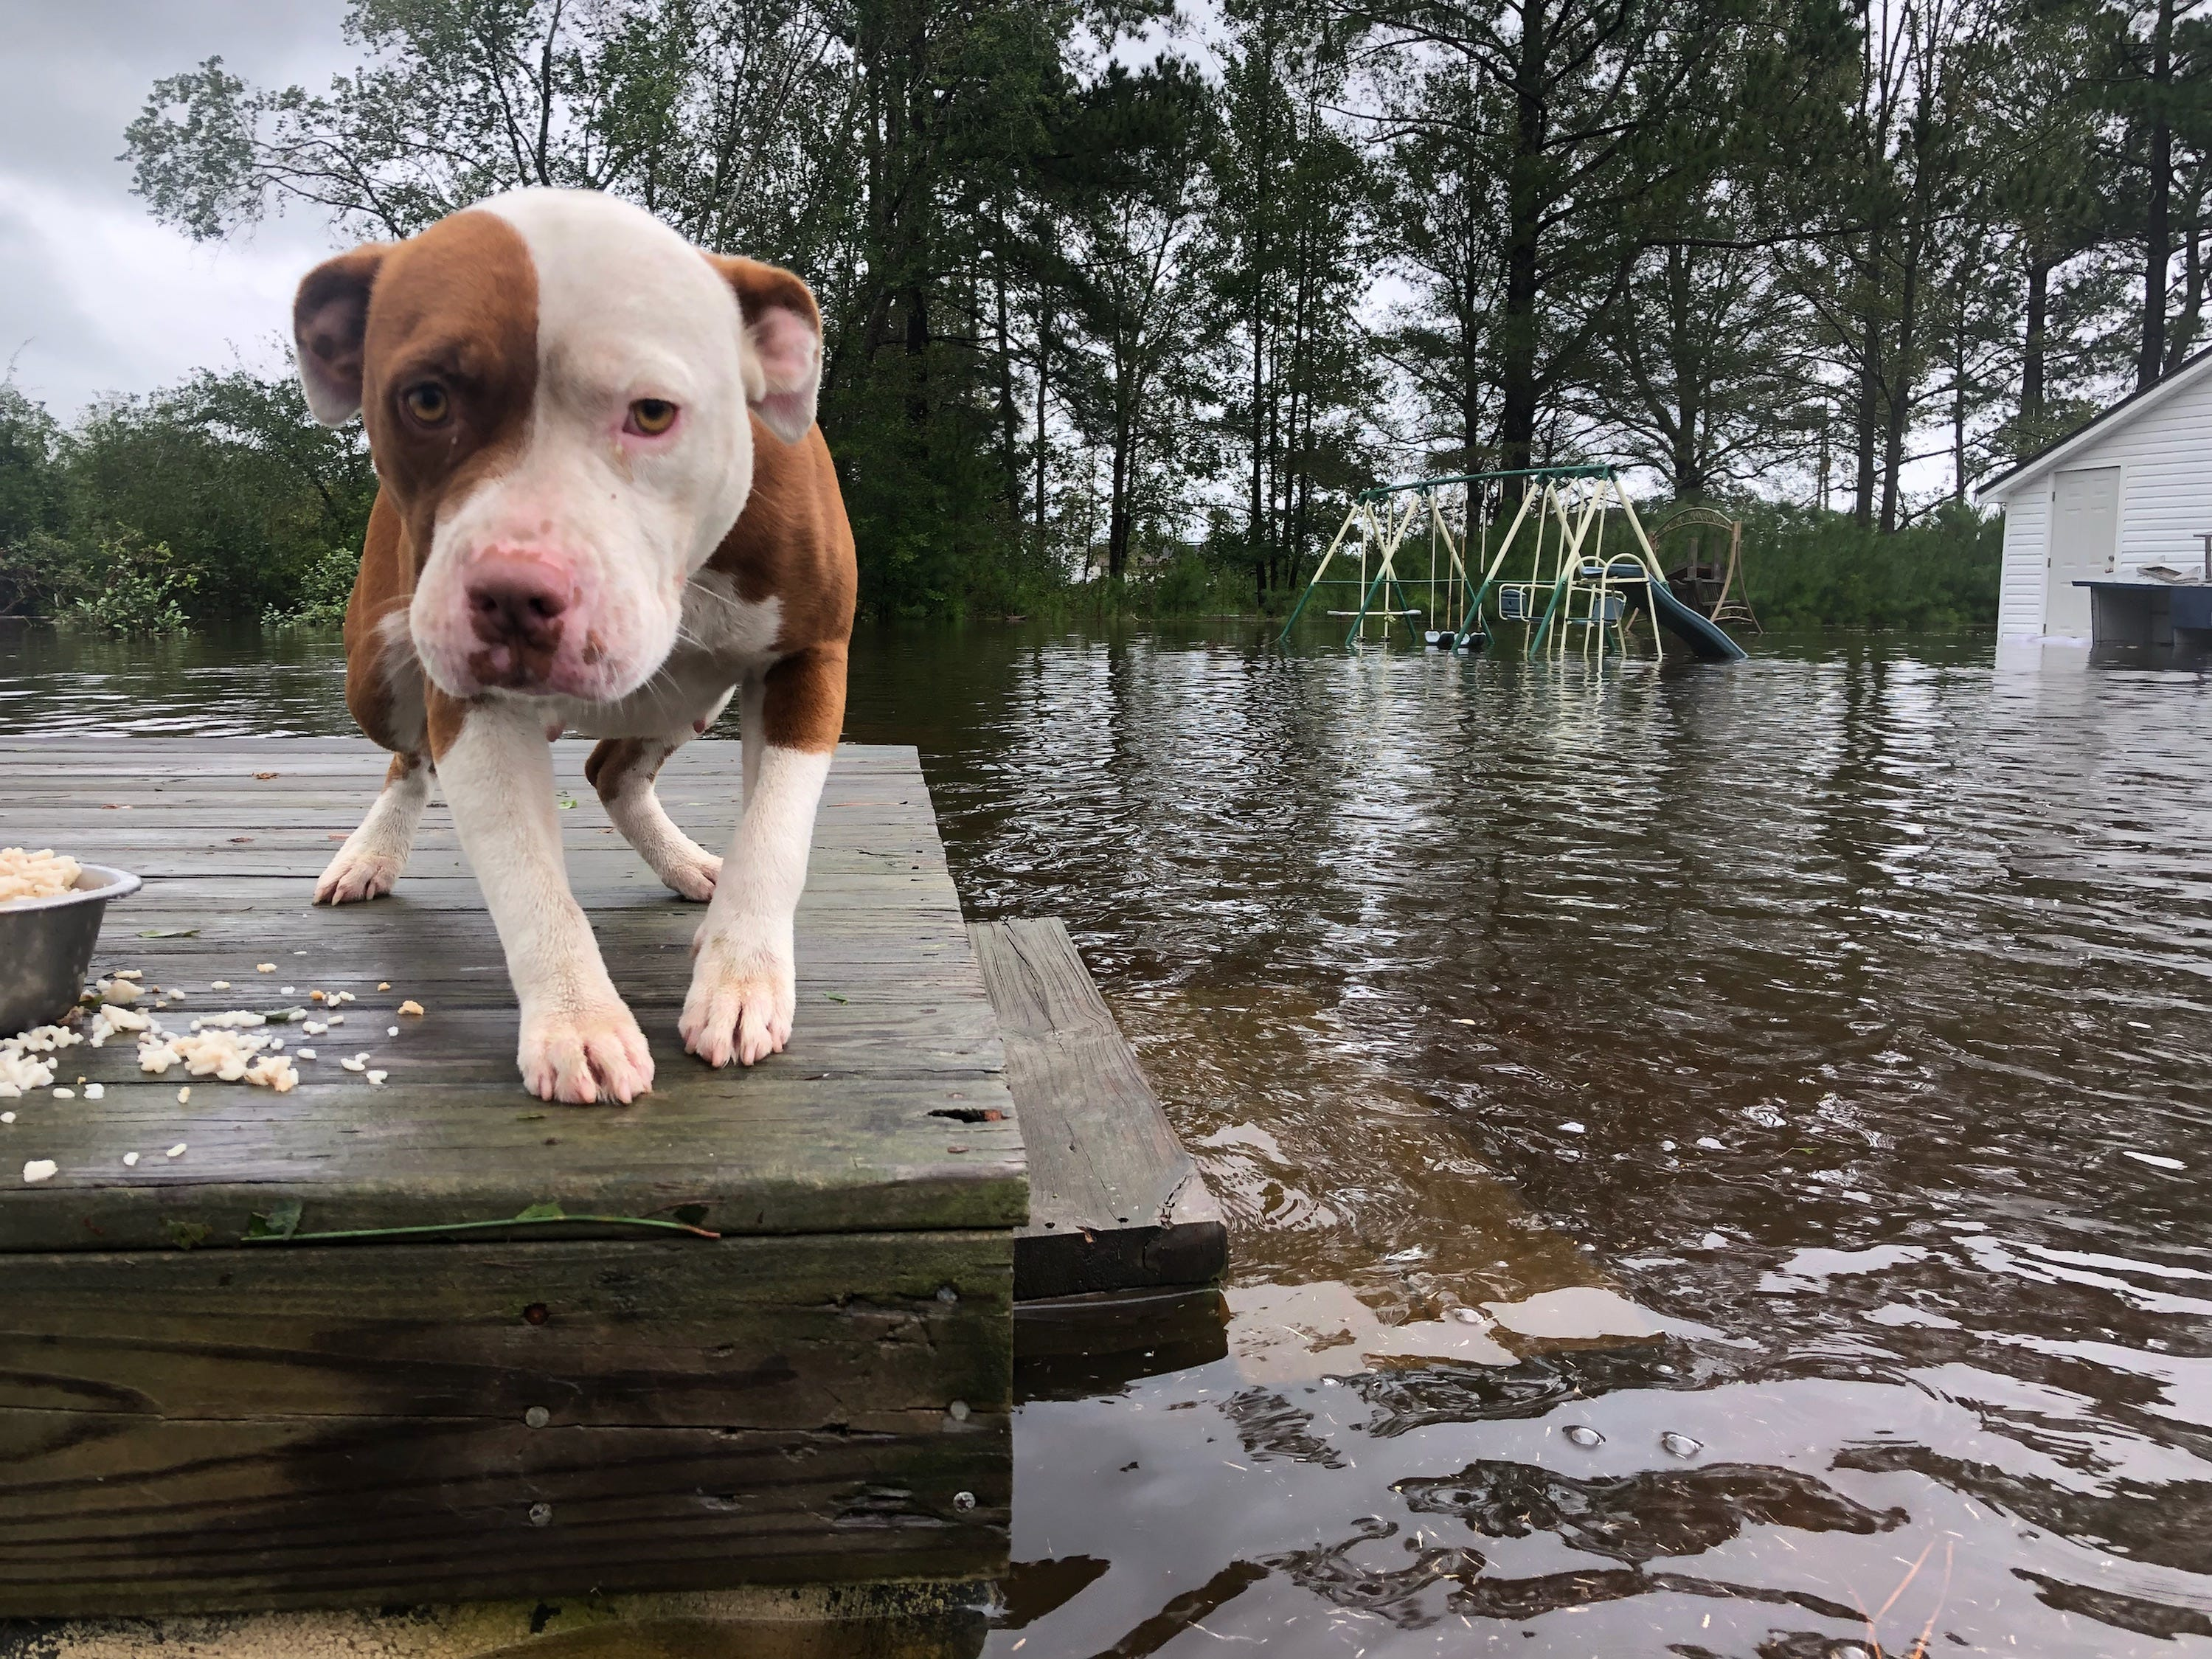 Displaced pets from Hurricane Florence arrive in Waukesha